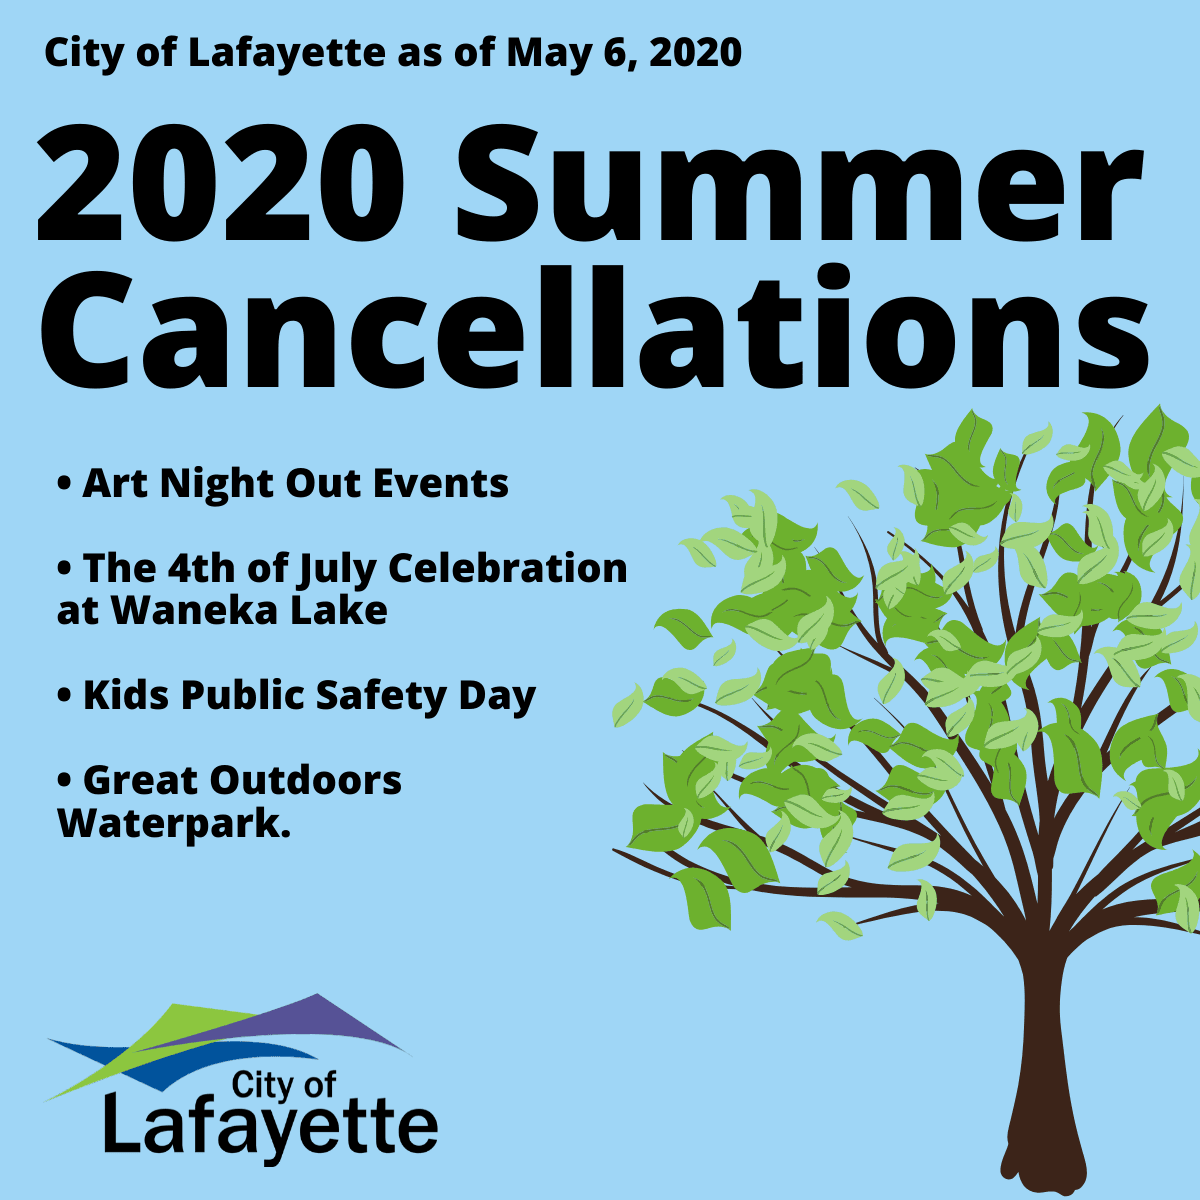 City of Lafayette Summer Cancellations